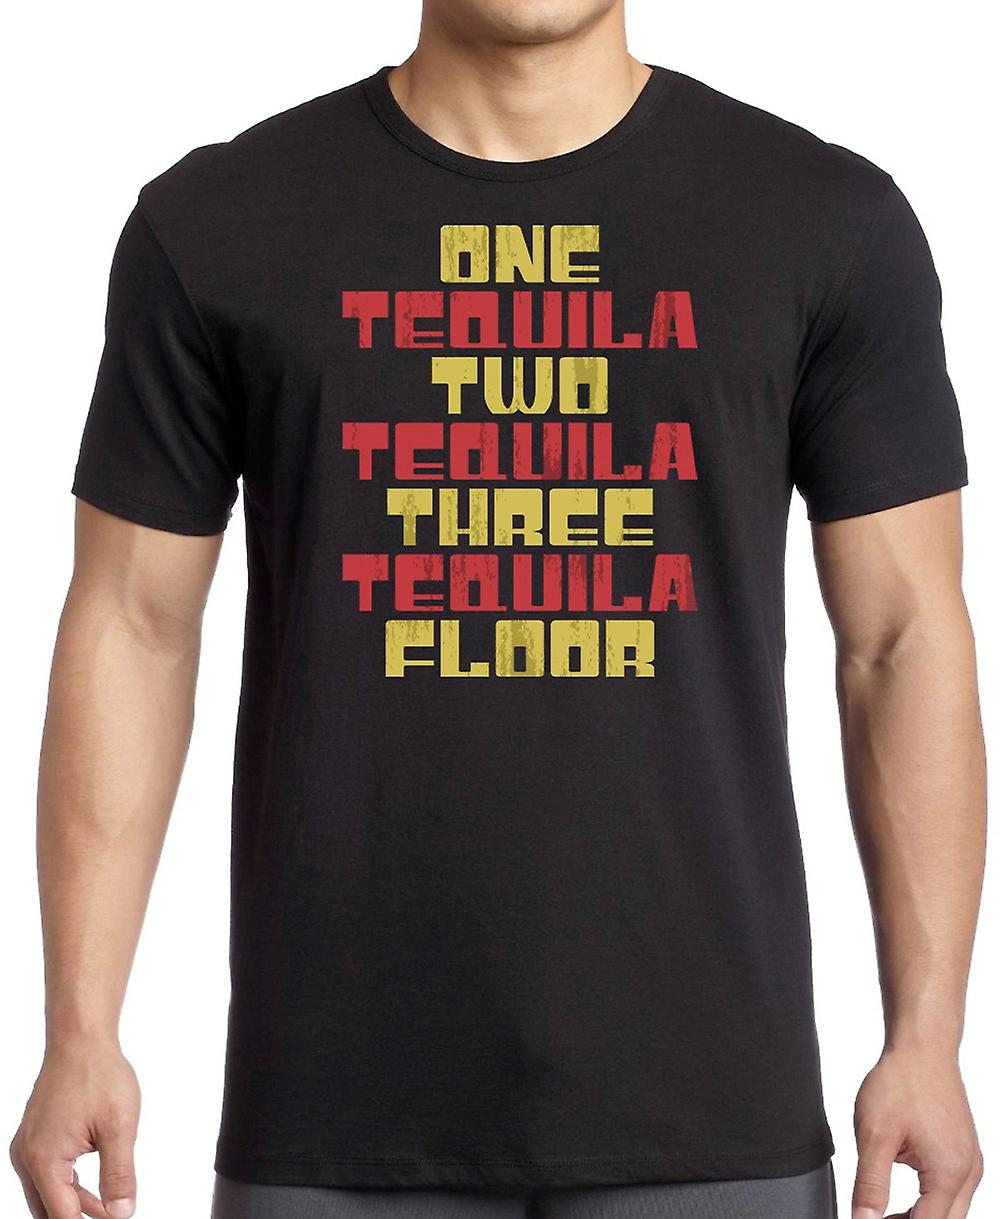 One Tequila Two Tequila Three Tequila Floor - Funny T Shirt